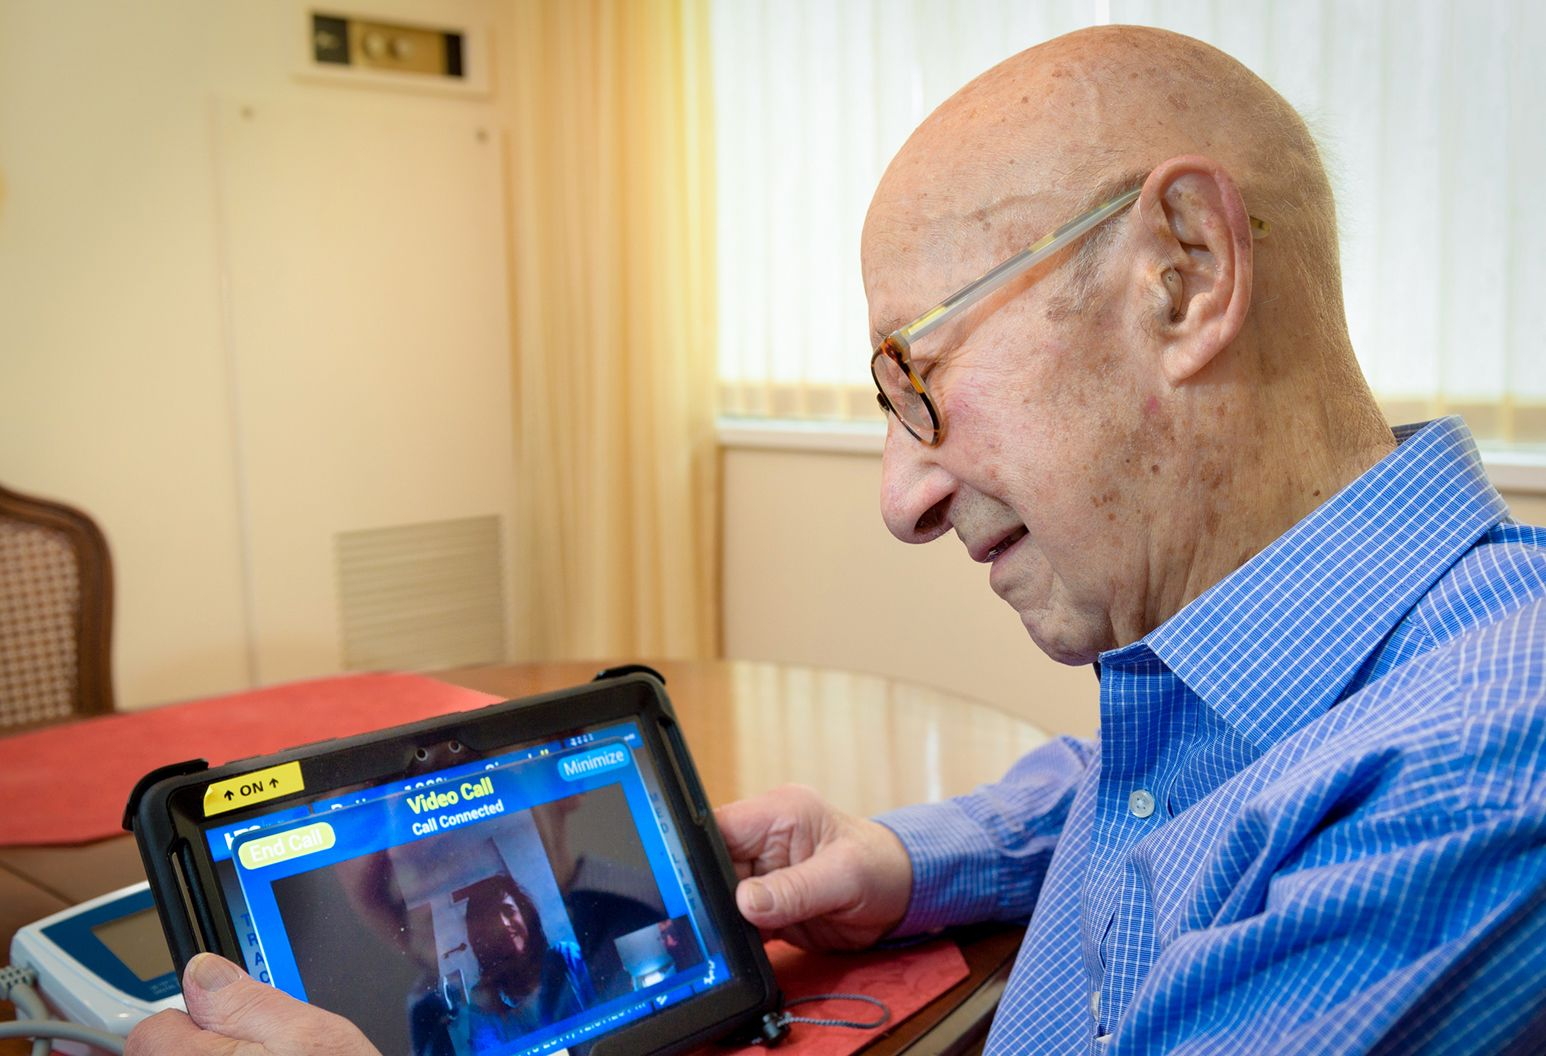 An elderly man views a clinician using a telehealth device